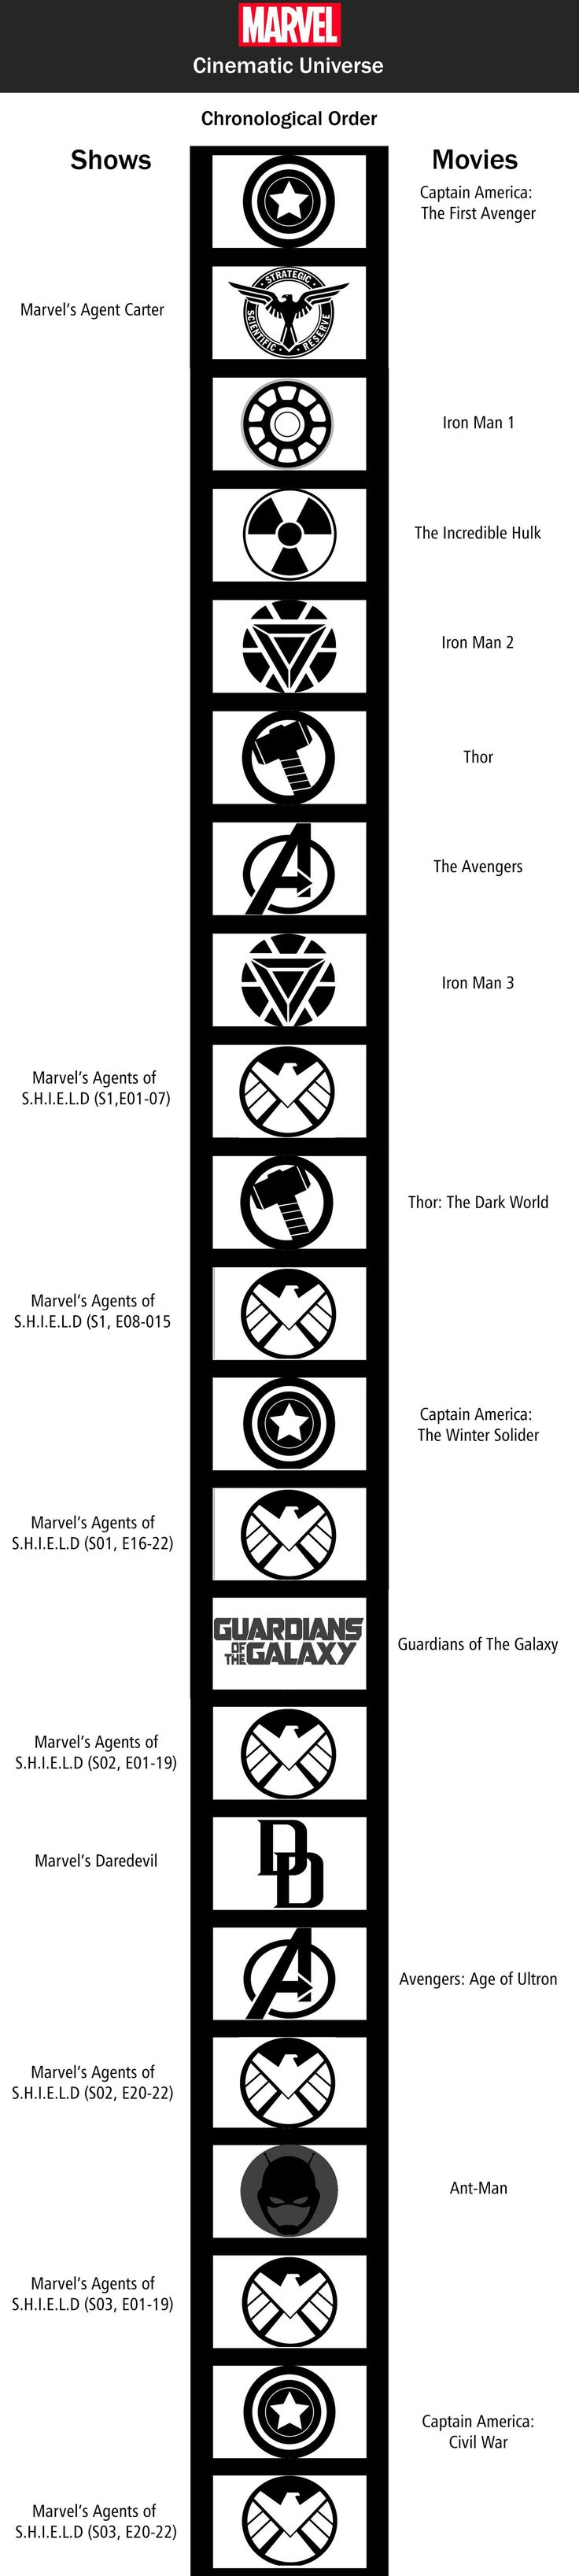 Marvel chronological order